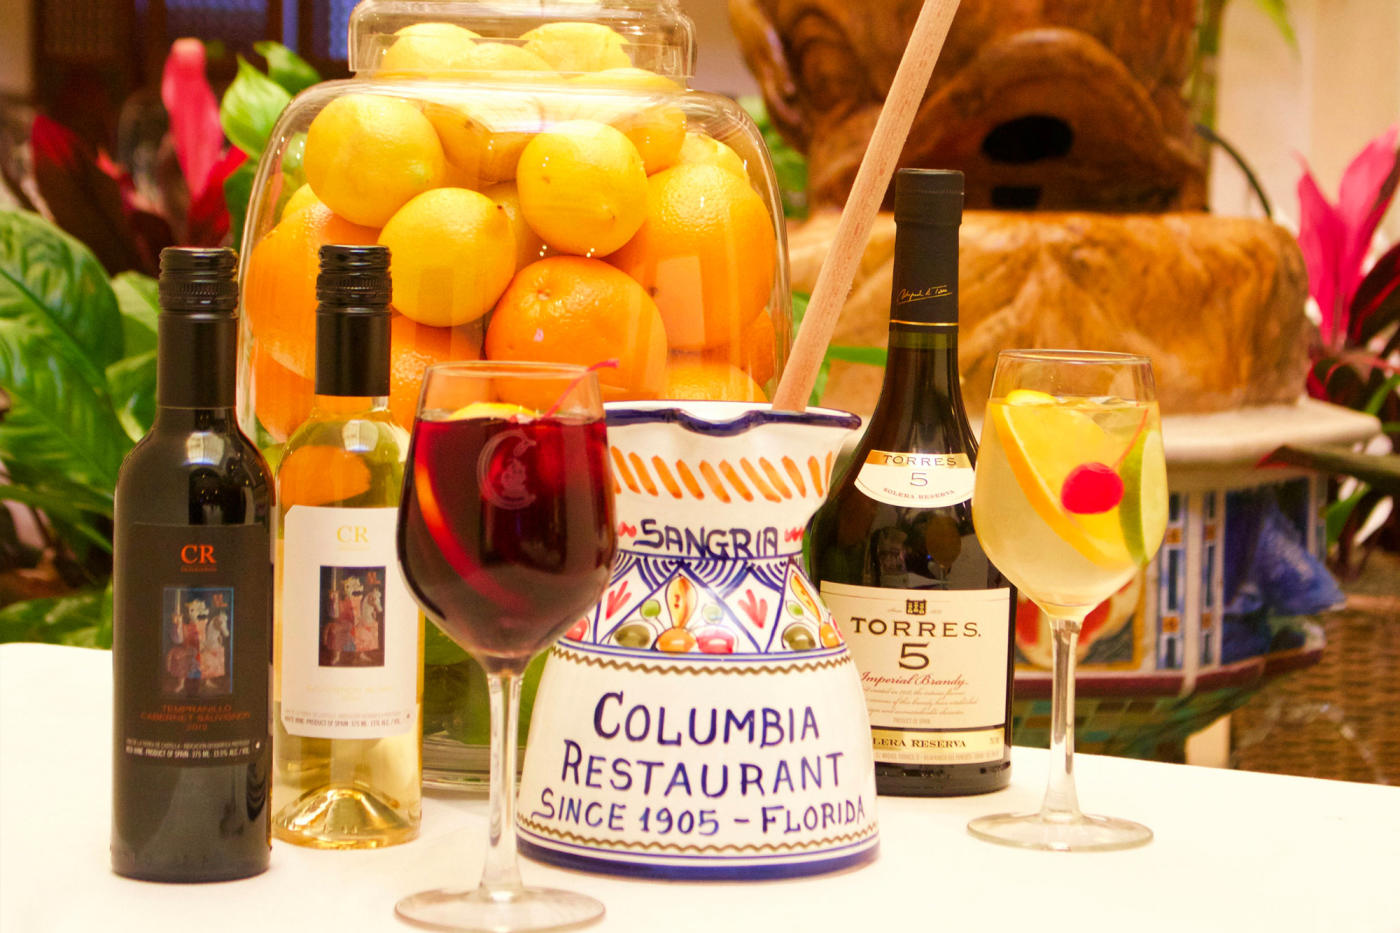 Pictured Above: Sangria Pitcher from the Columbia Restaurant